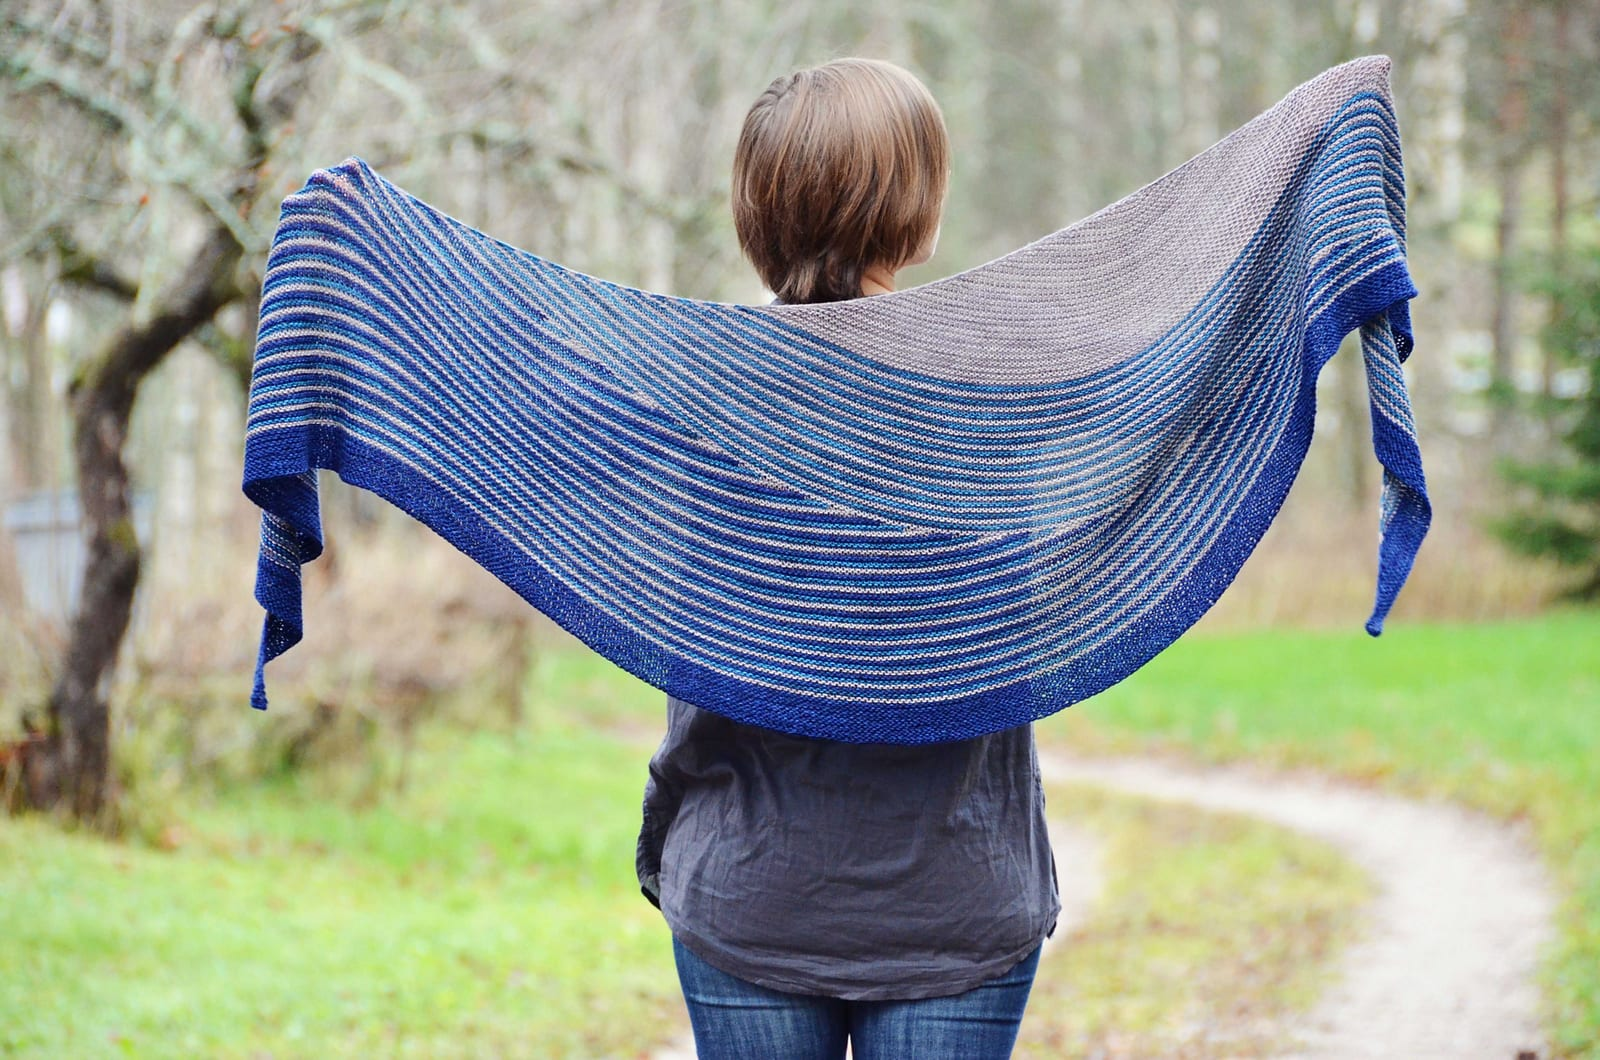 Color Affection Shawl by Veera Välimäki